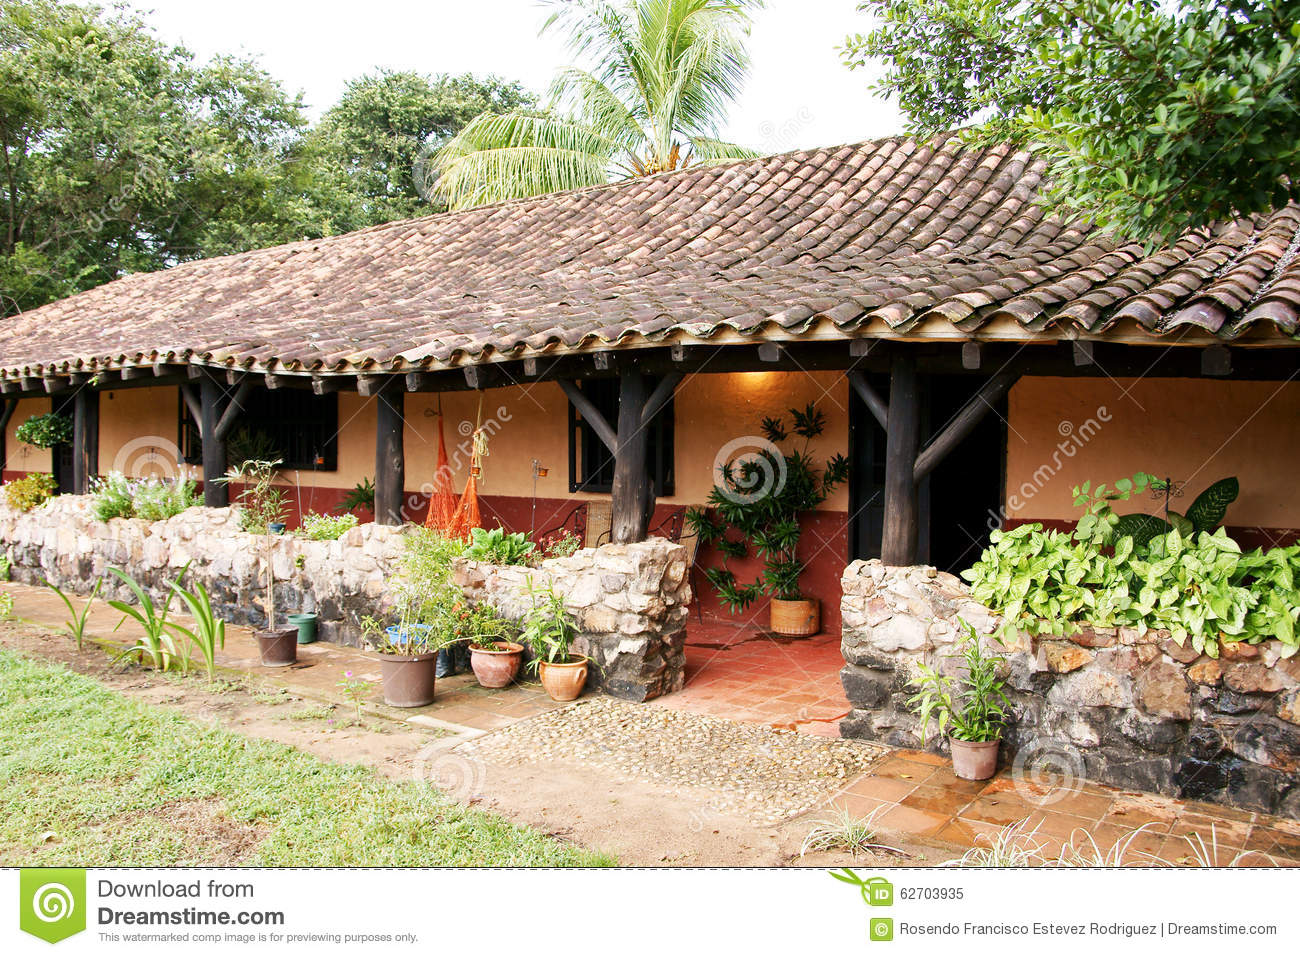 Small House Plans With Photos In Kerala also 600 Sq Ft House Plans With Bat besides Roof Attachment Design Detail likewise Royalty Free Stock Image Old Fence Ranch Illustration Water Color Ink Image38970416 moreover Stock Photography Houston Texas Image2789682. on 3d ranch house plans